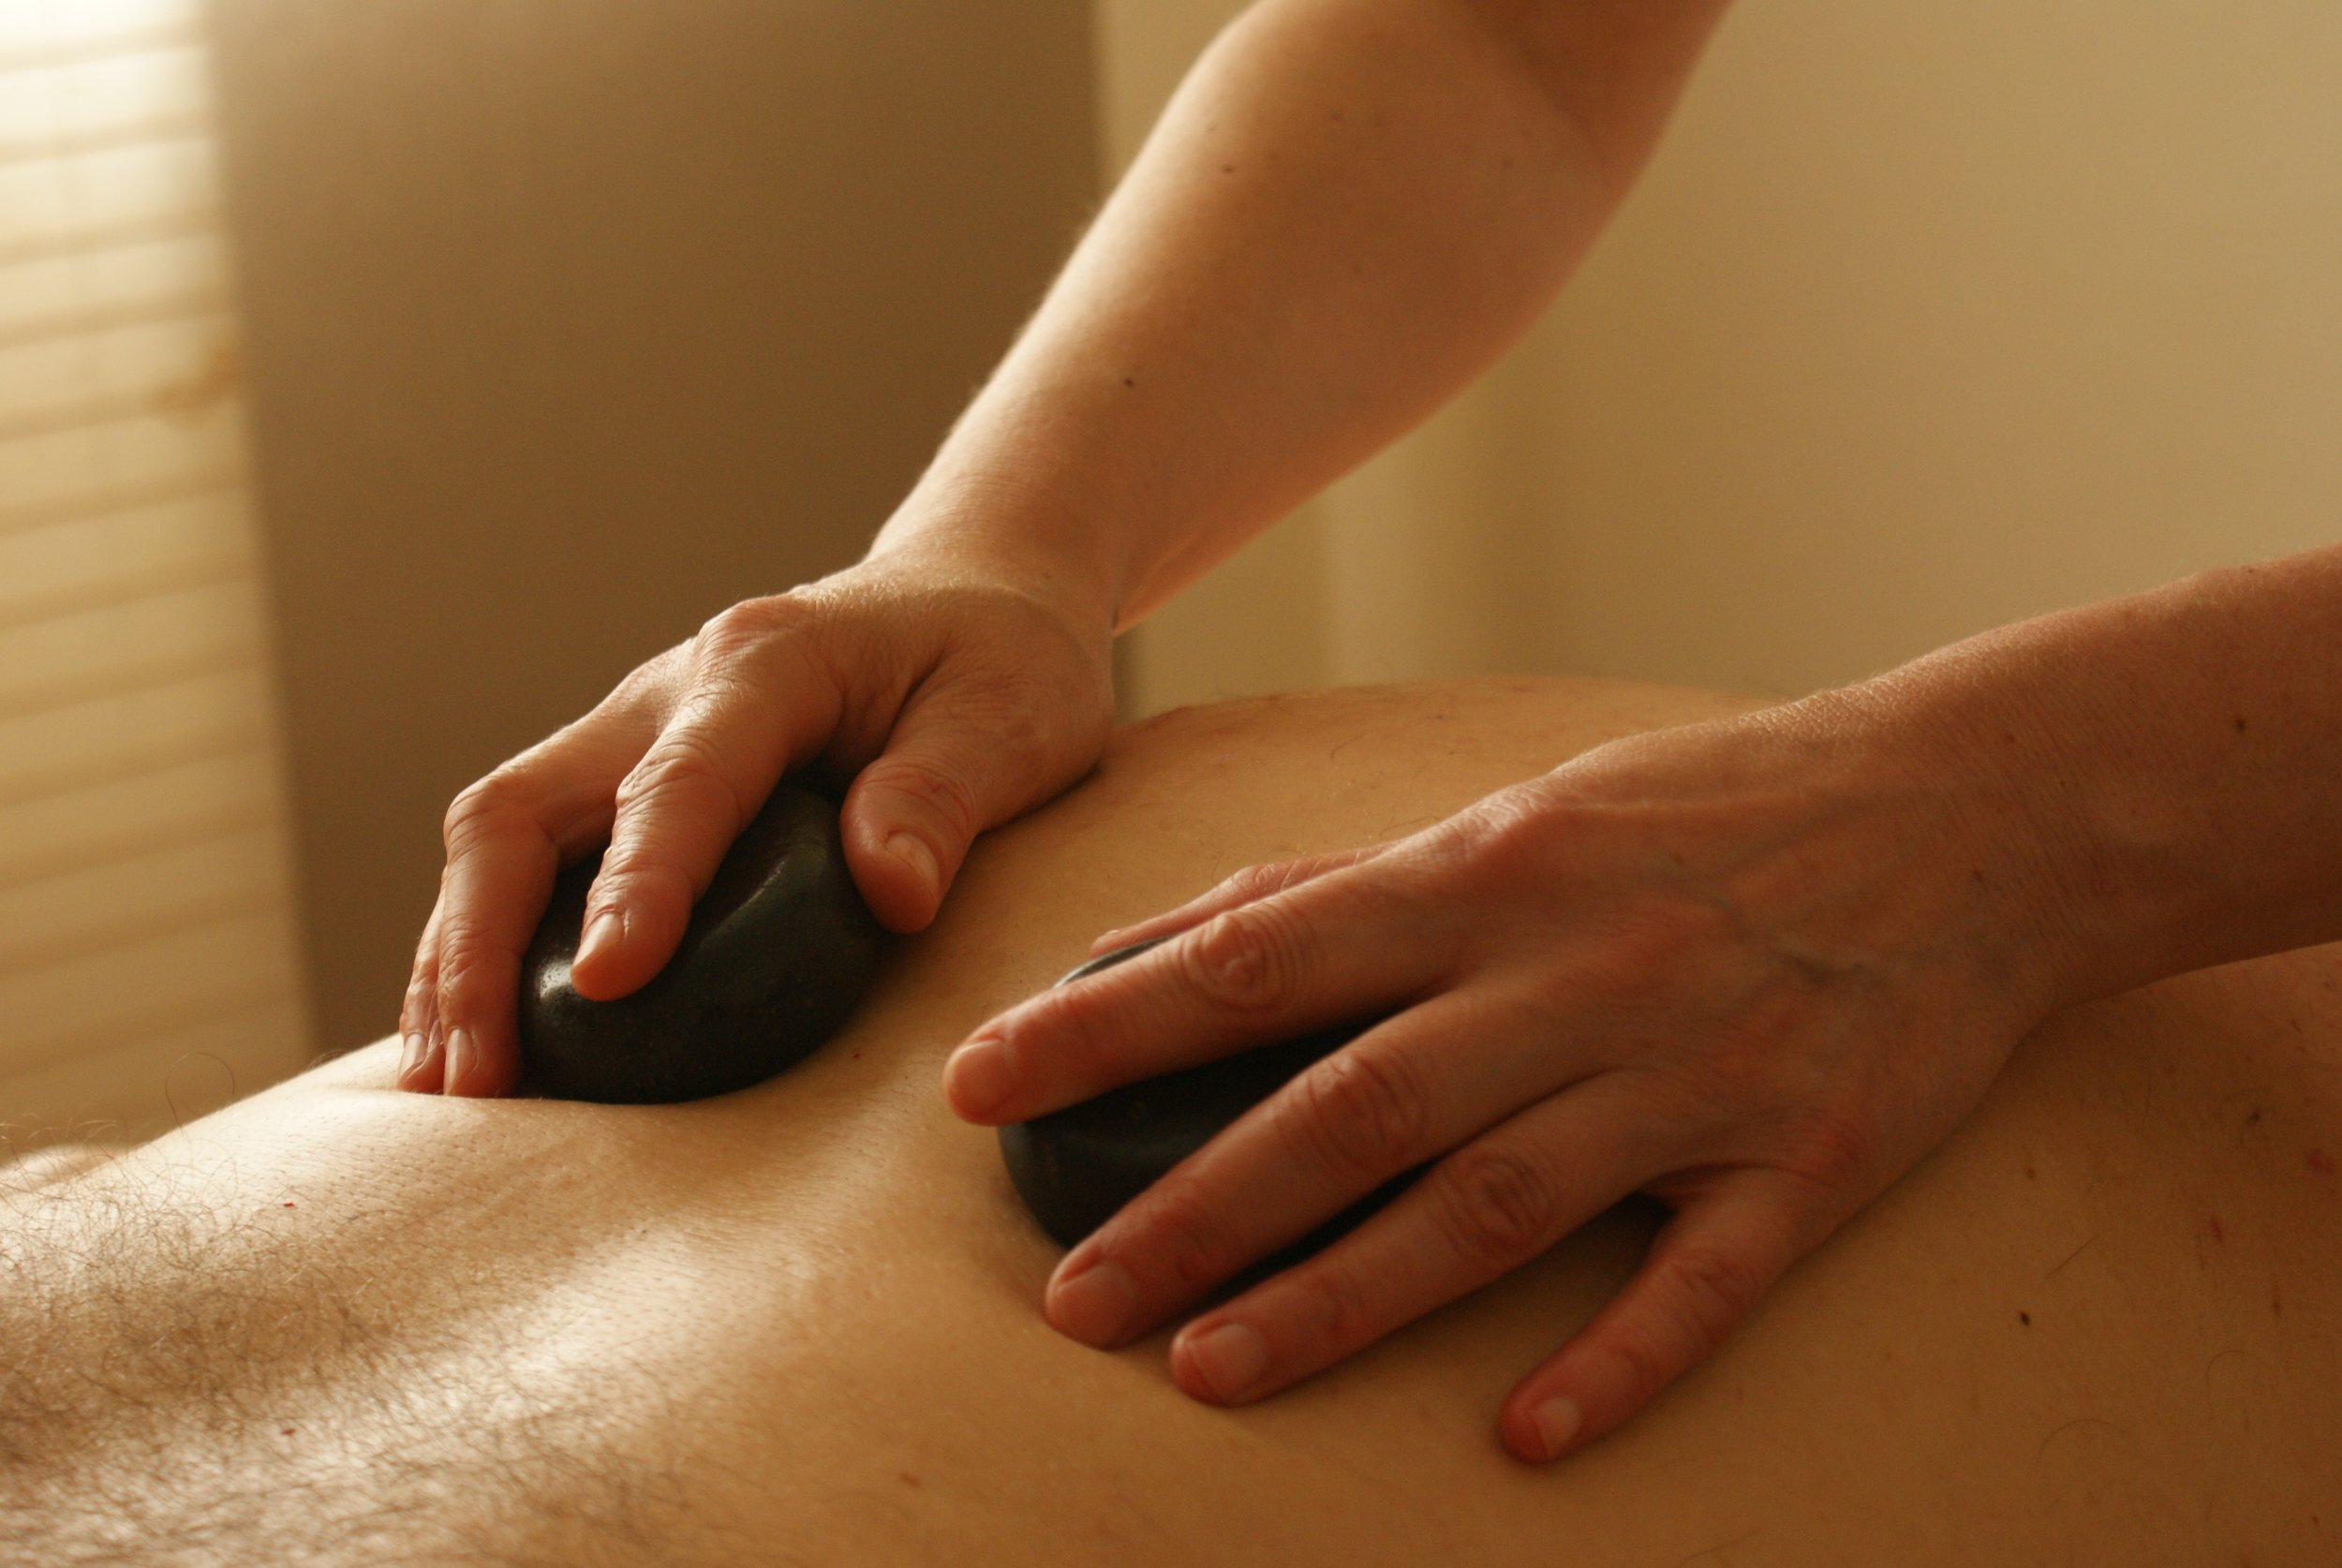 Services offered:   - Therapeutic massage - Relaxation massage